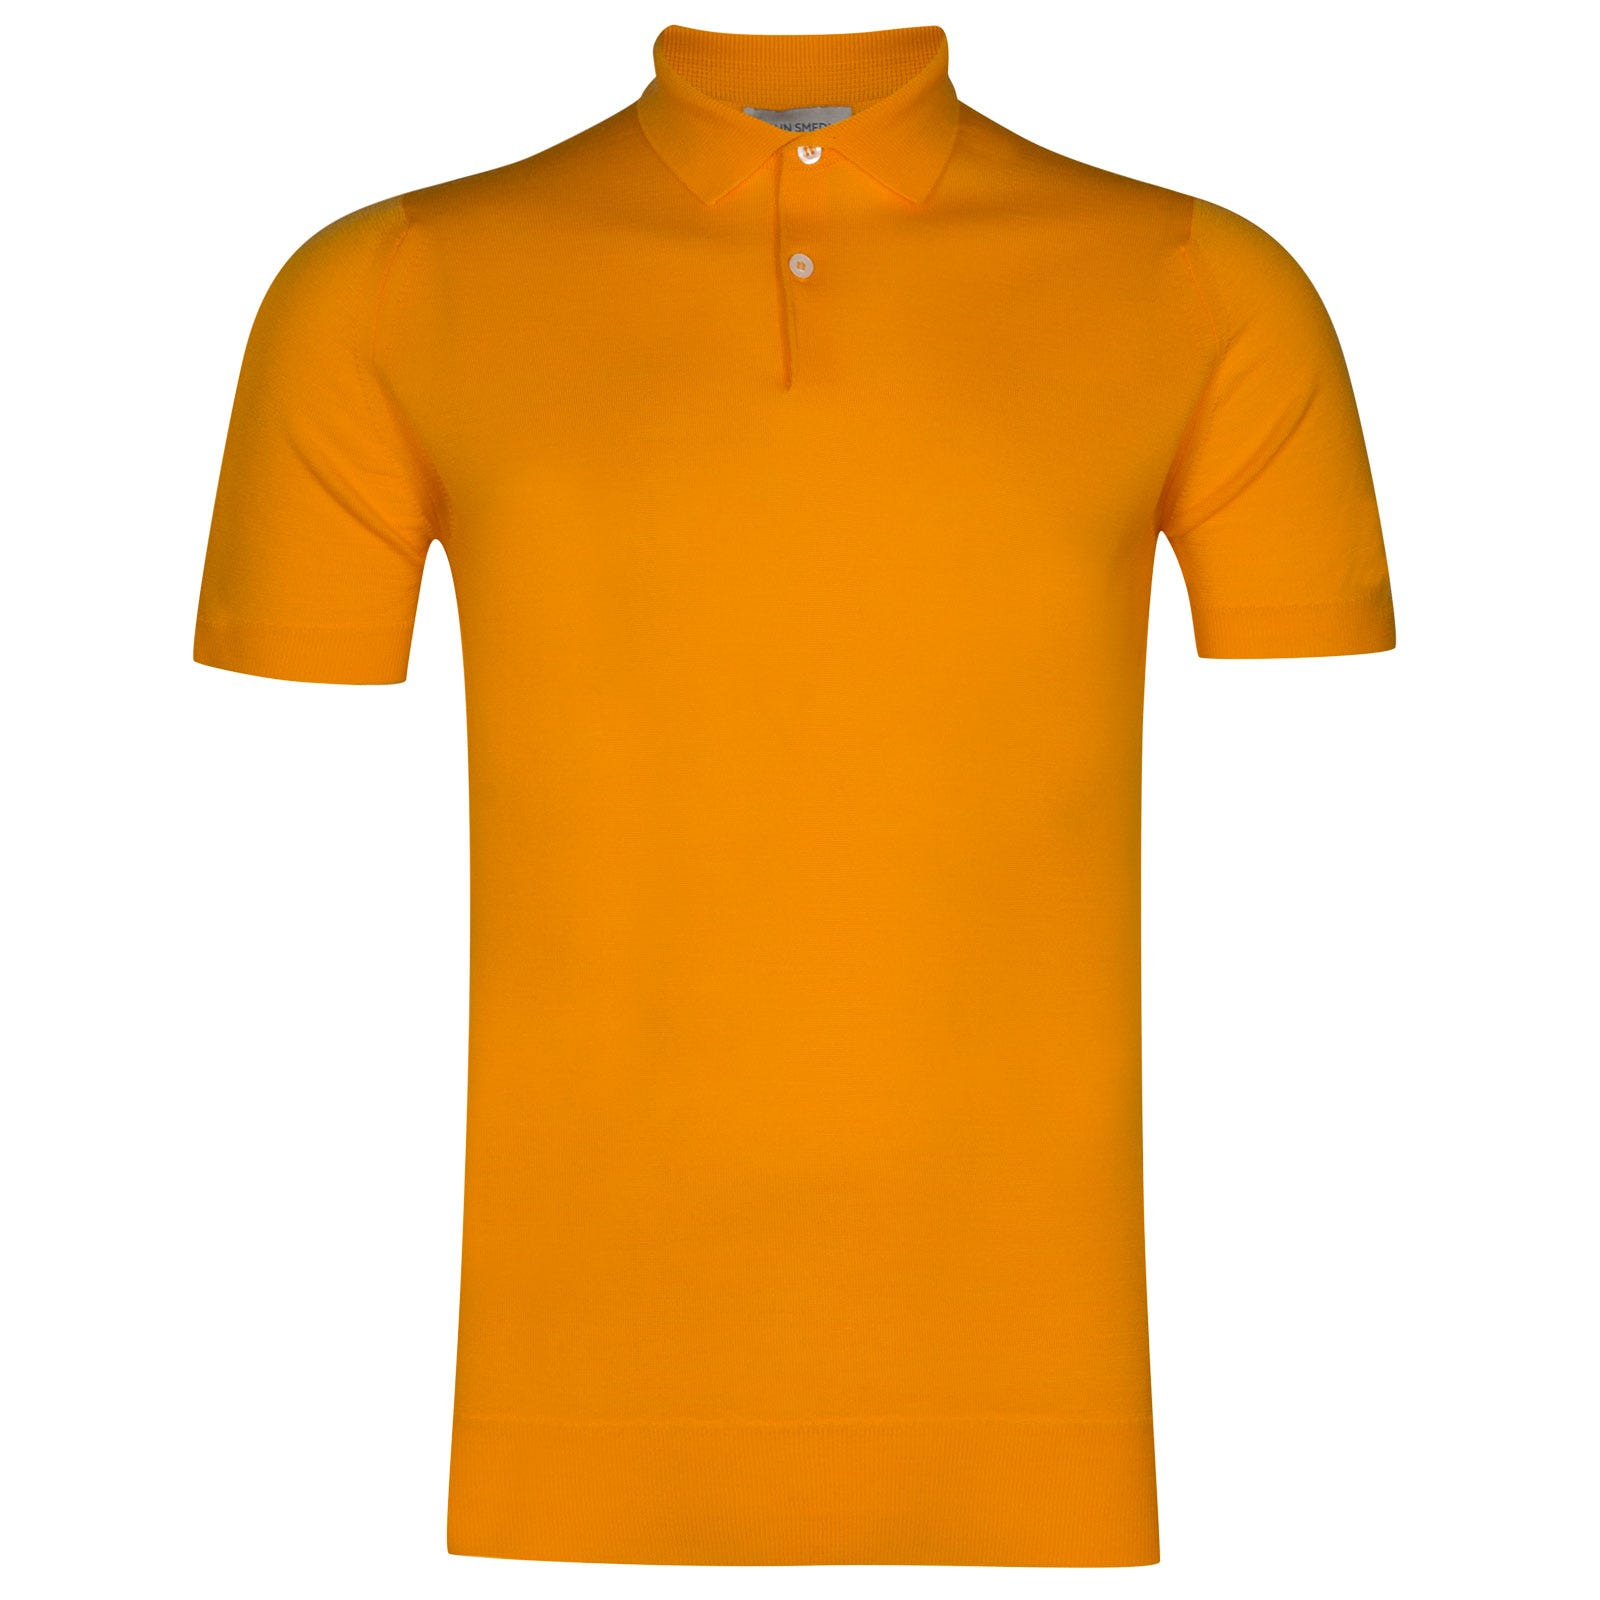 John Smedley payton Merino Wool Shirt in Buckthorn Orange-M